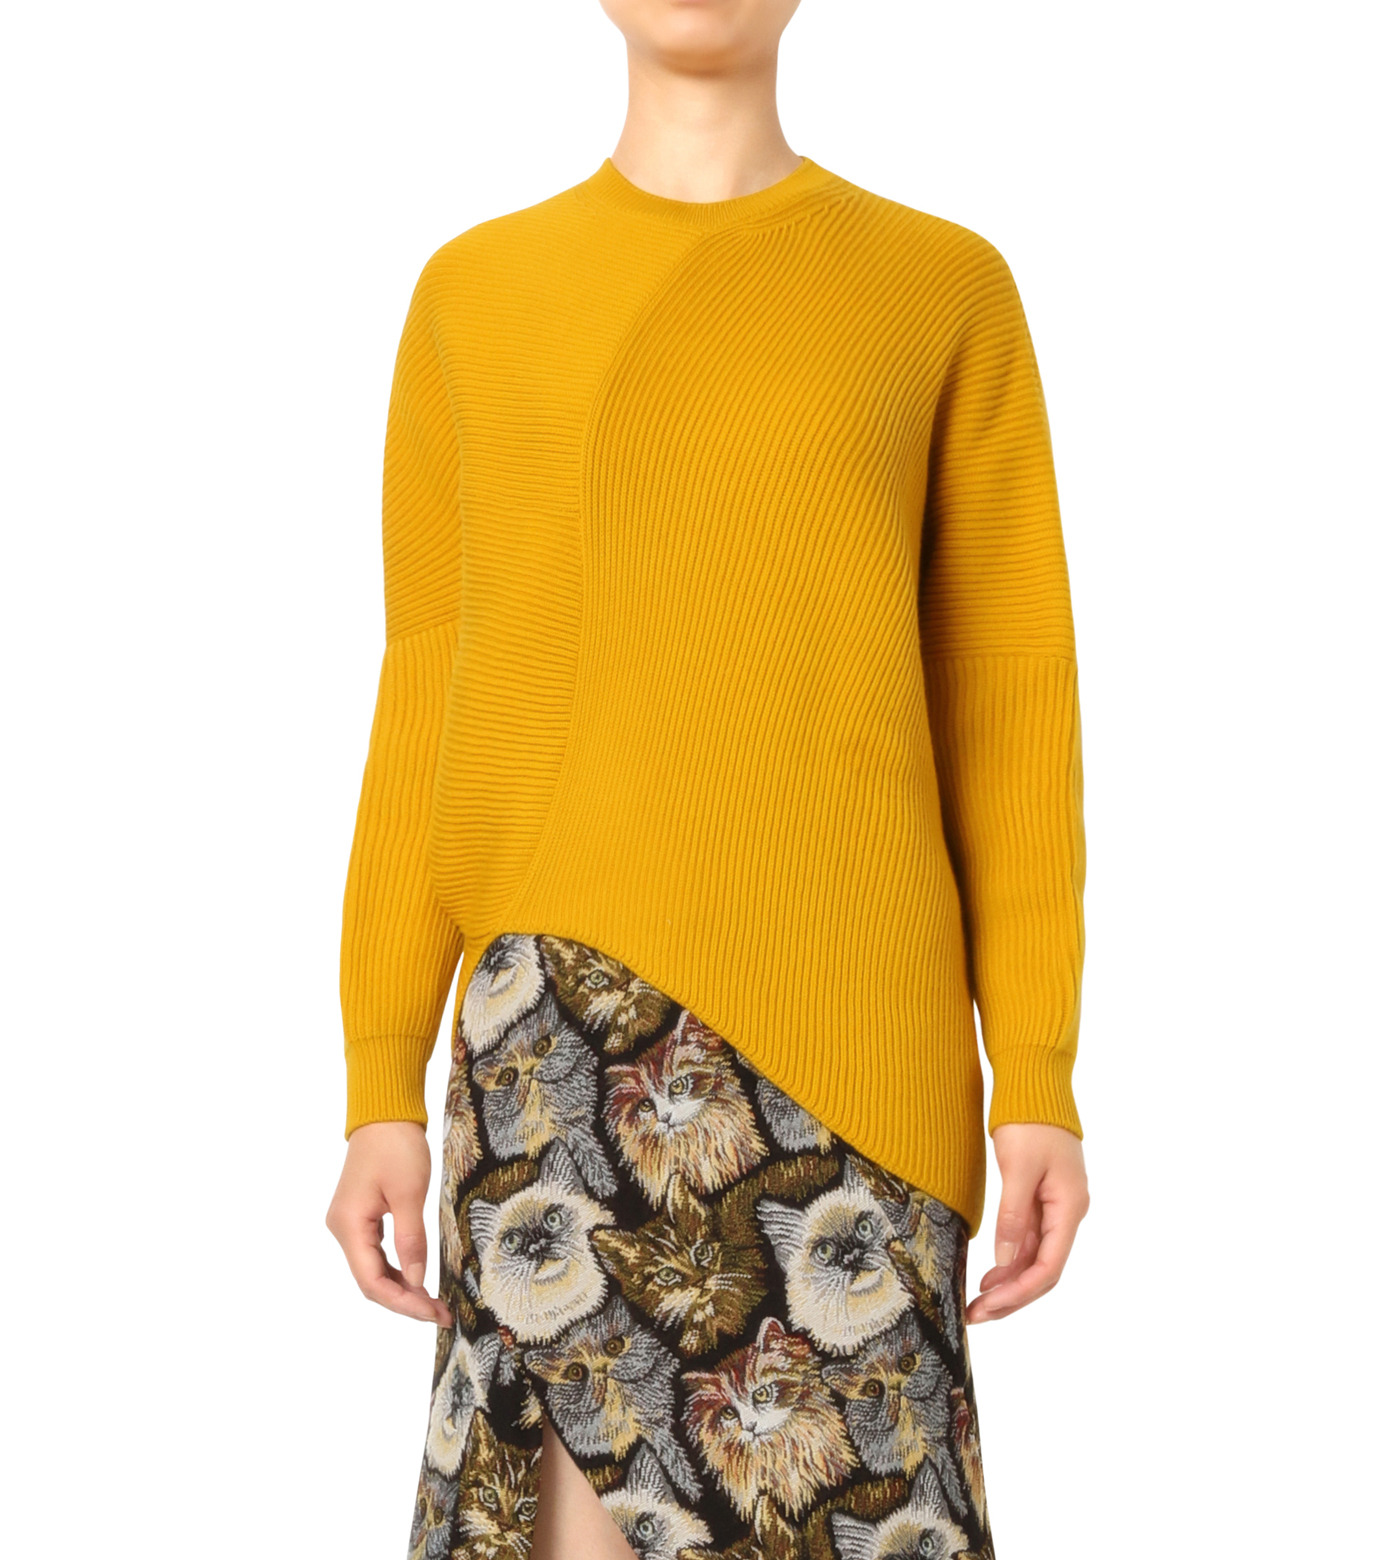 Stella McCartney(ステラマッカートニー)のClean Ribs Crew Neck Jumper-YELLOW(ニット/knit)-431737-S1672-32 拡大詳細画像1